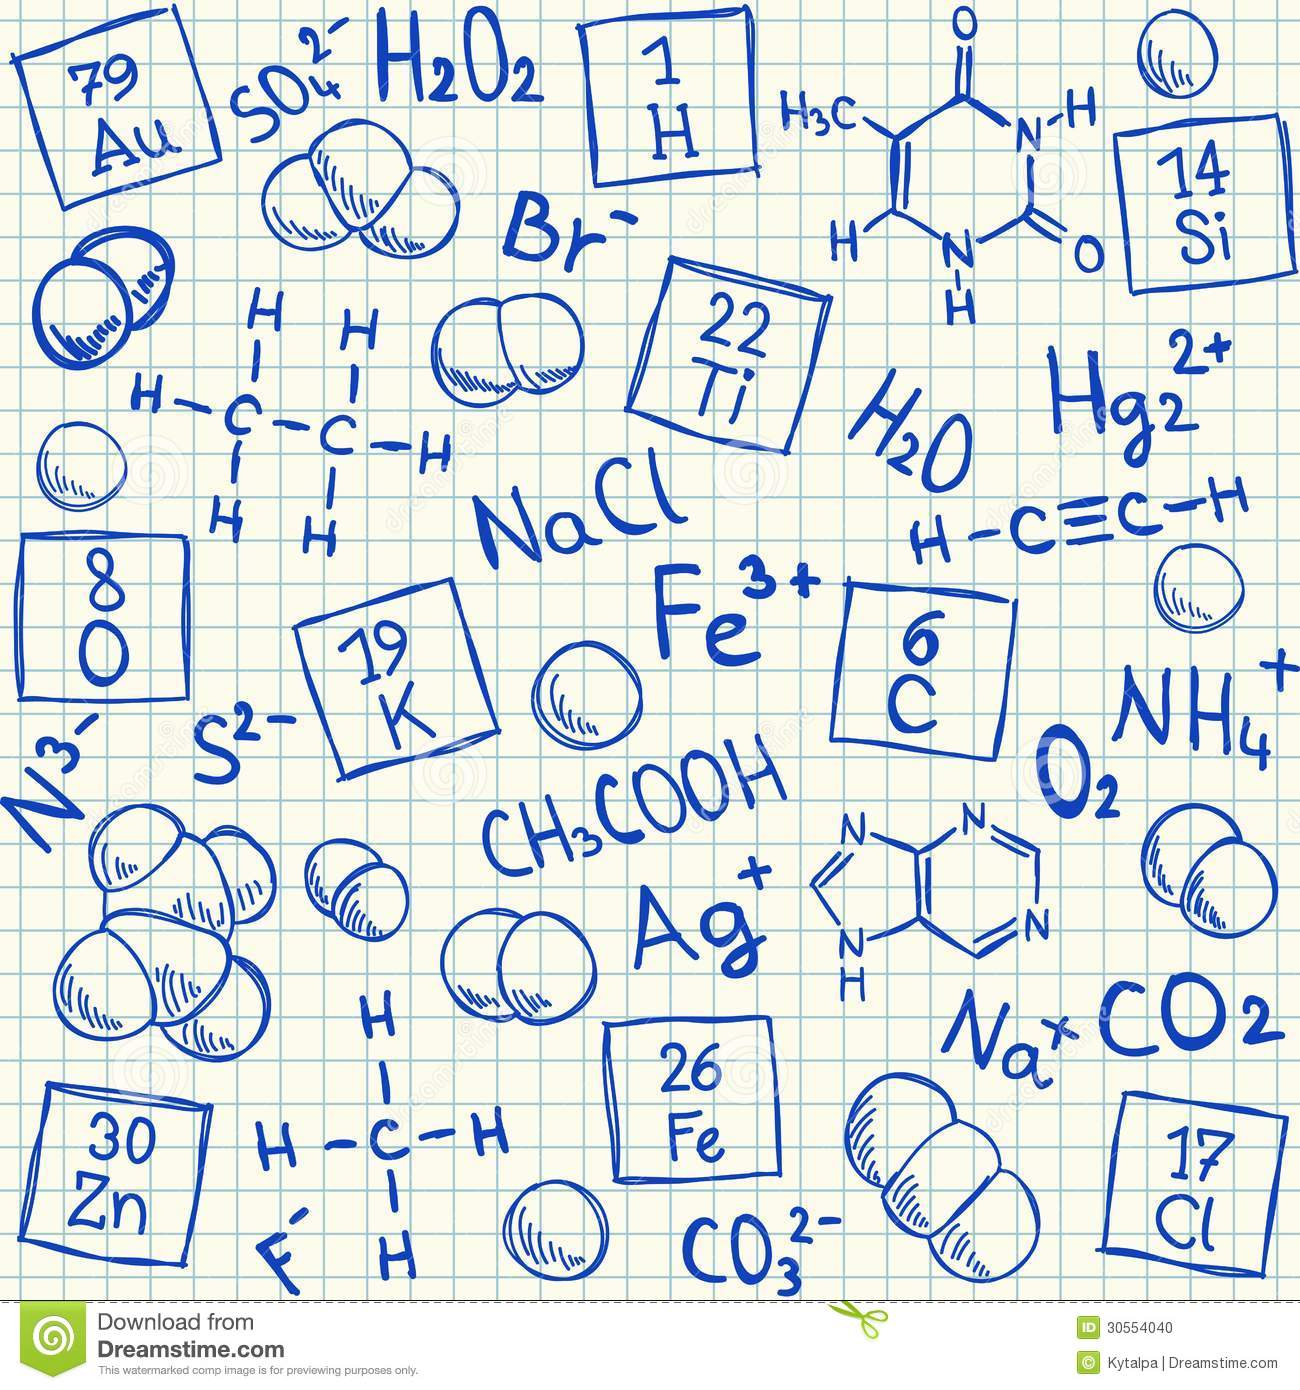 Chemical Doodles On School Squared Paper Stock Photo